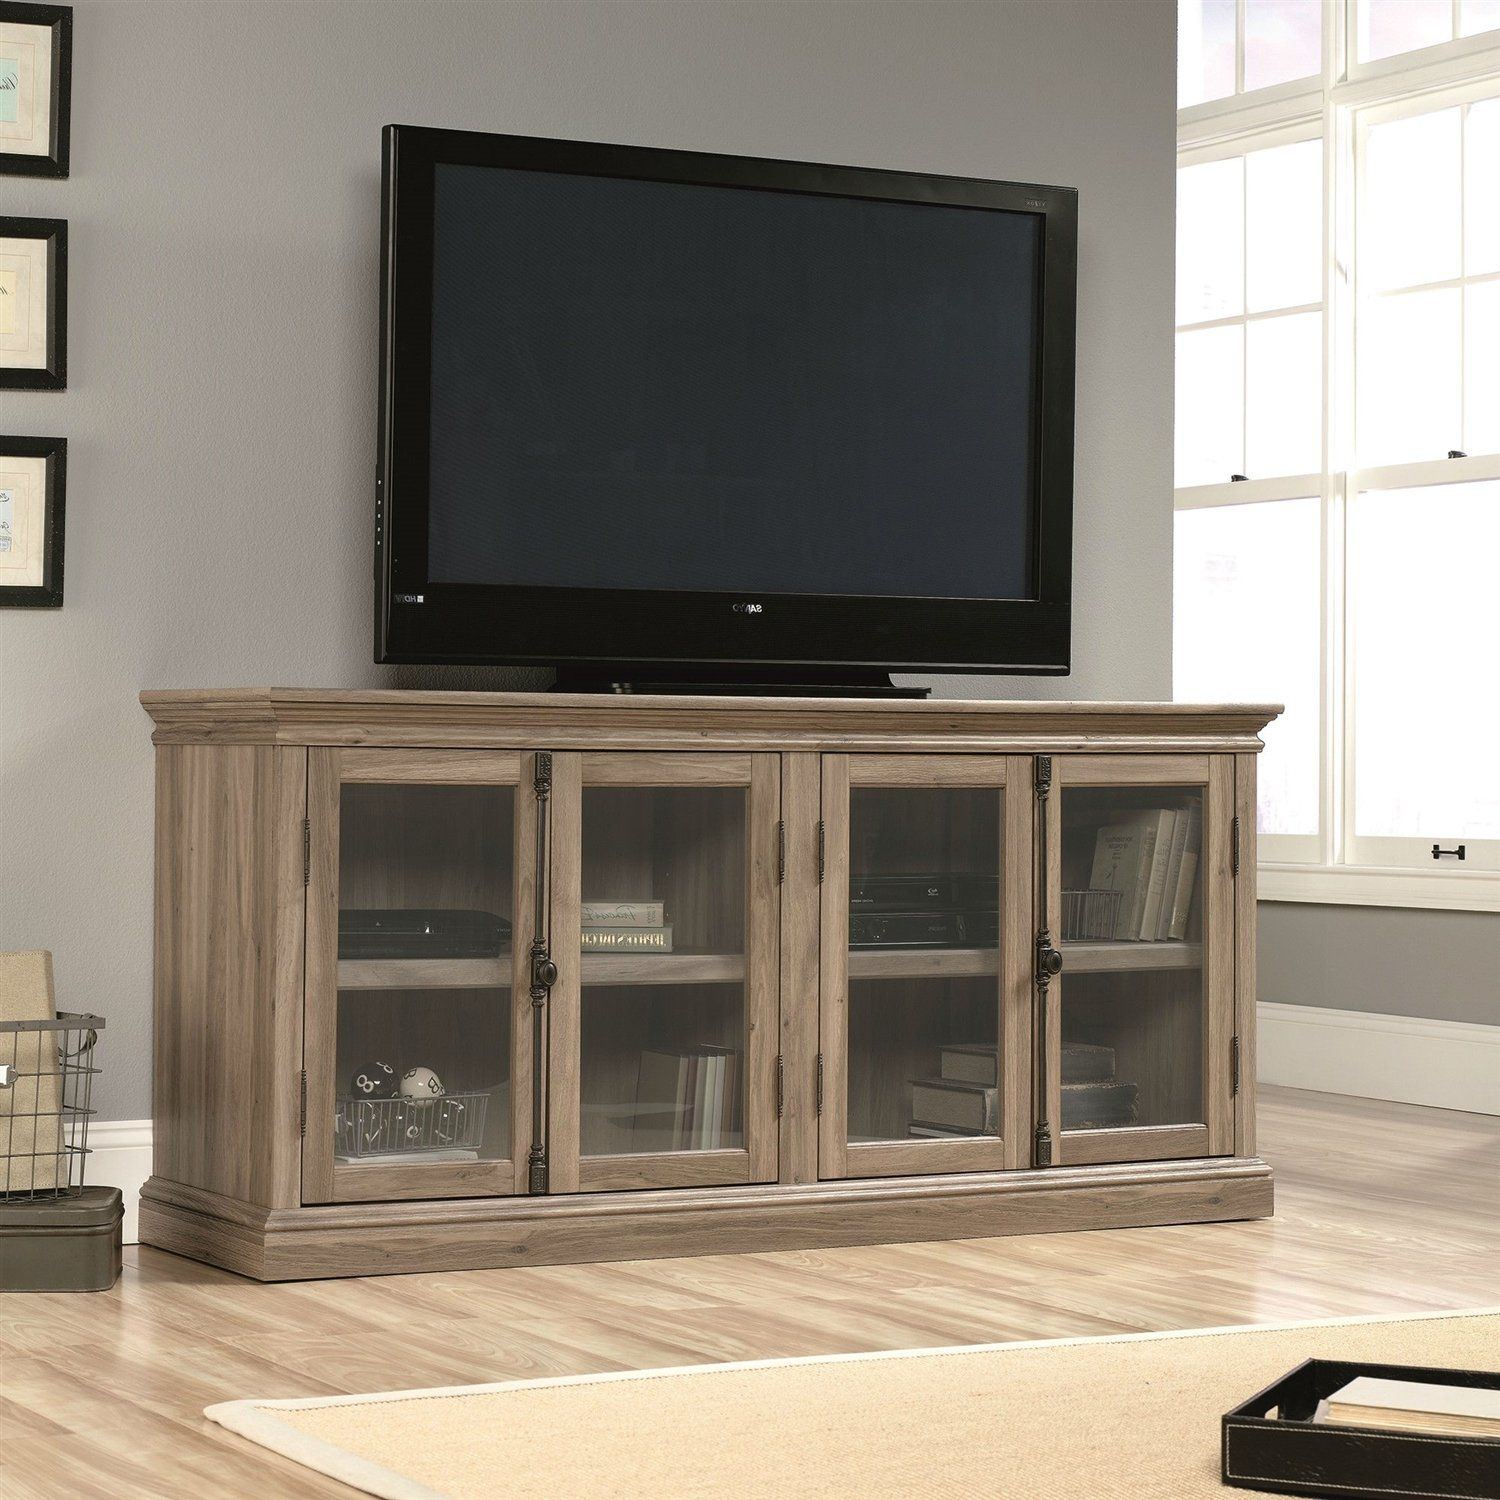 Salt Oak Wood Finish Tv Stand With Tempered Glass Doors Fits Up To